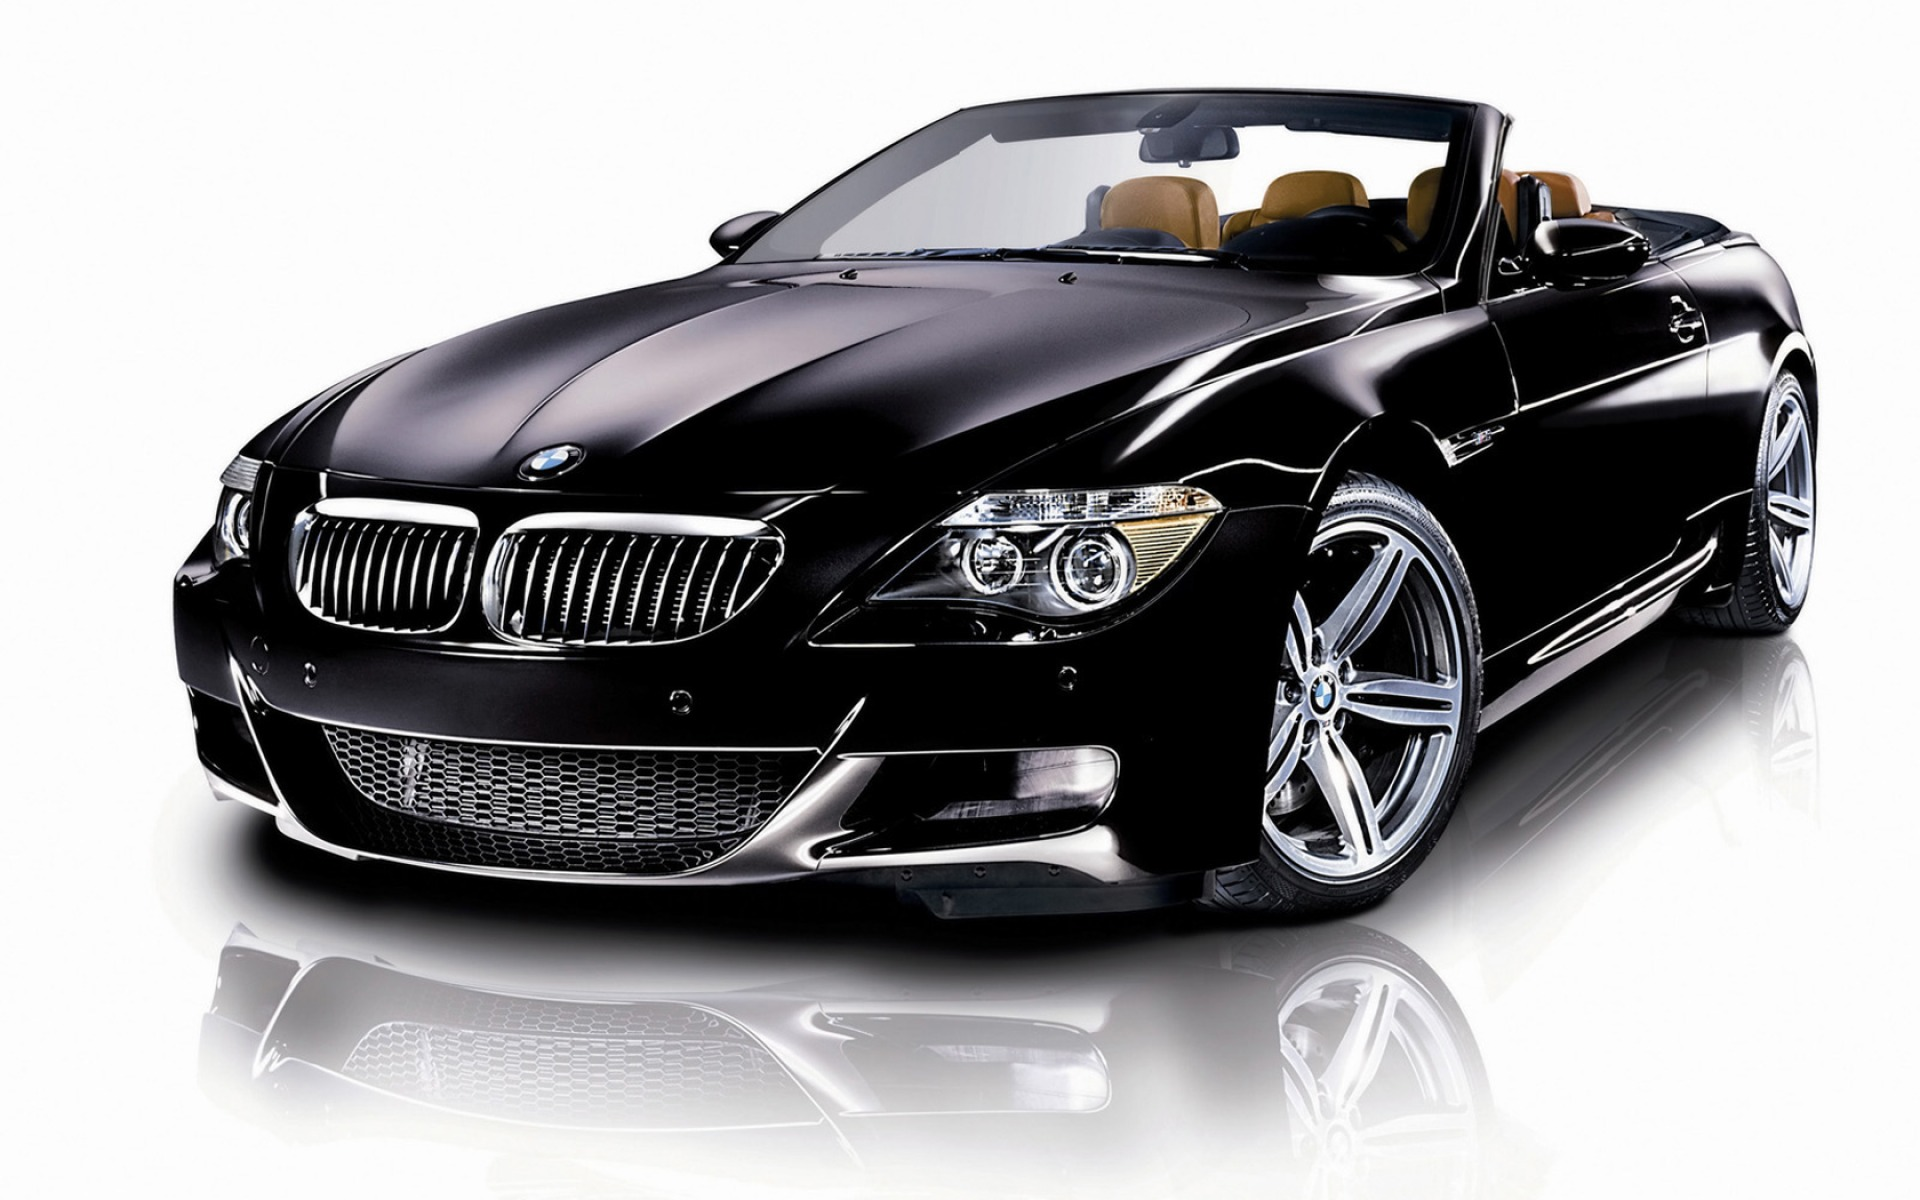 Ultrablogus  Ravishing Bmw Car Wallpaper Wallpapers For Free Download About   With Extraordinary Bmw M Convertible Wallpaper Bmw Cars With Awesome  Lincoln Town Car Interior Also  Jaguar Xf Interior In Addition  Hyundai Elantra Interior And  Toyota Runner Interior As Well As Jeep Rubicon Interior Photos Additionally  Hhr Interior From Allfreedownloadcom With Ultrablogus  Extraordinary Bmw Car Wallpaper Wallpapers For Free Download About   With Awesome Bmw M Convertible Wallpaper Bmw Cars And Ravishing  Lincoln Town Car Interior Also  Jaguar Xf Interior In Addition  Hyundai Elantra Interior From Allfreedownloadcom